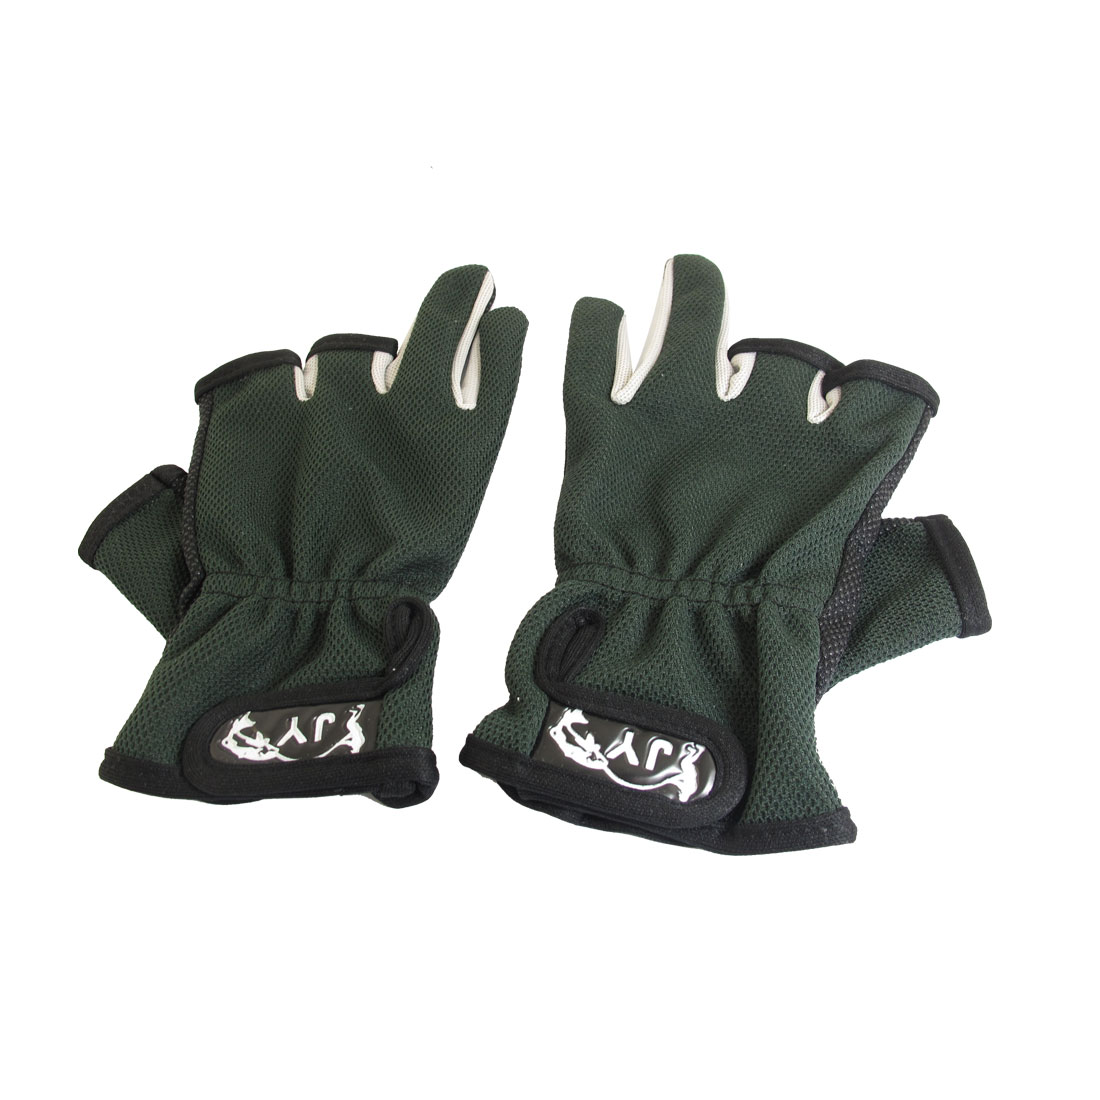 Pair 3 Cut Finger Dark Green Black Antislip Dots Palm Hook Loop Closure Fishing Gloves